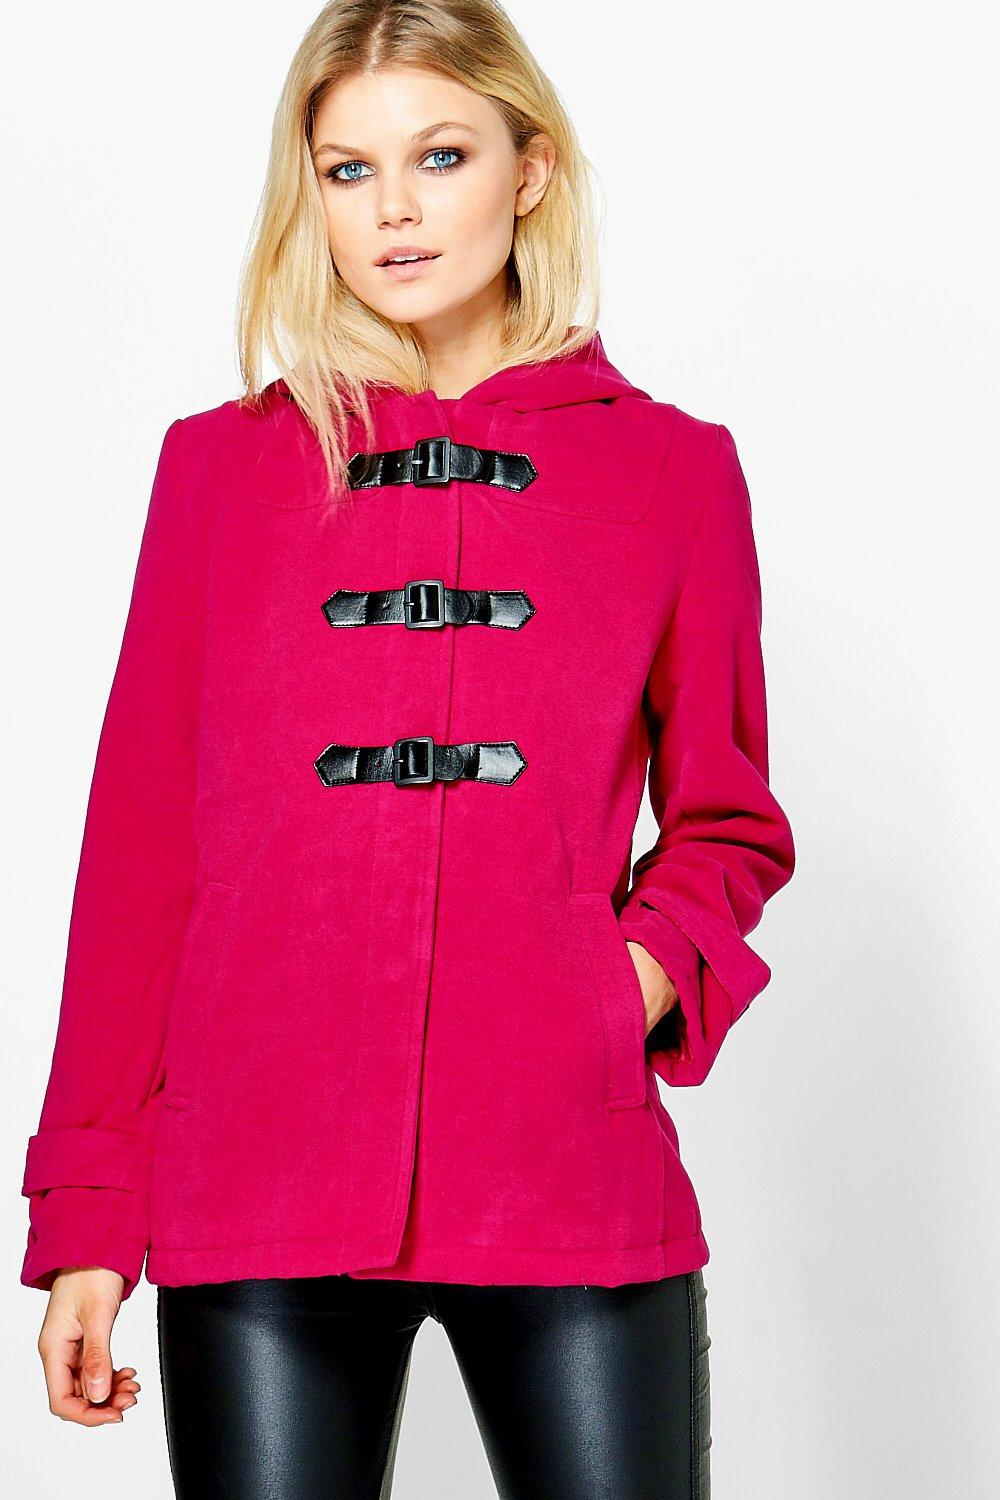 Cheap womens duffle coats